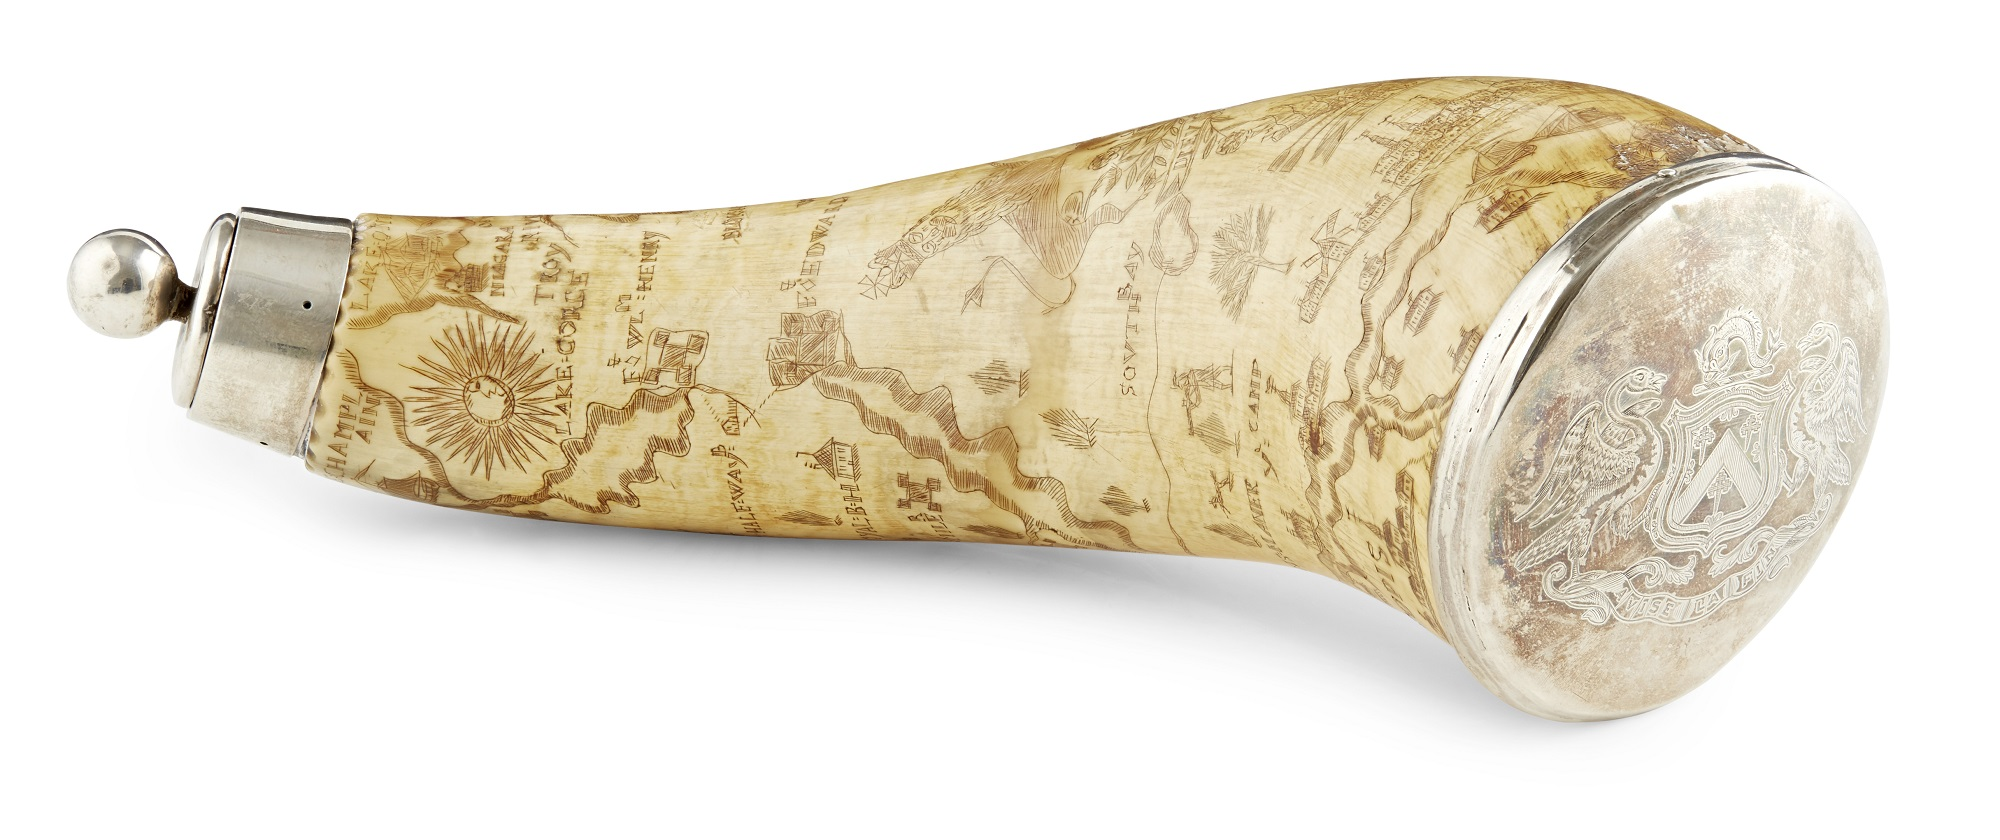 The Kennedy of Cassillis Powder Horn